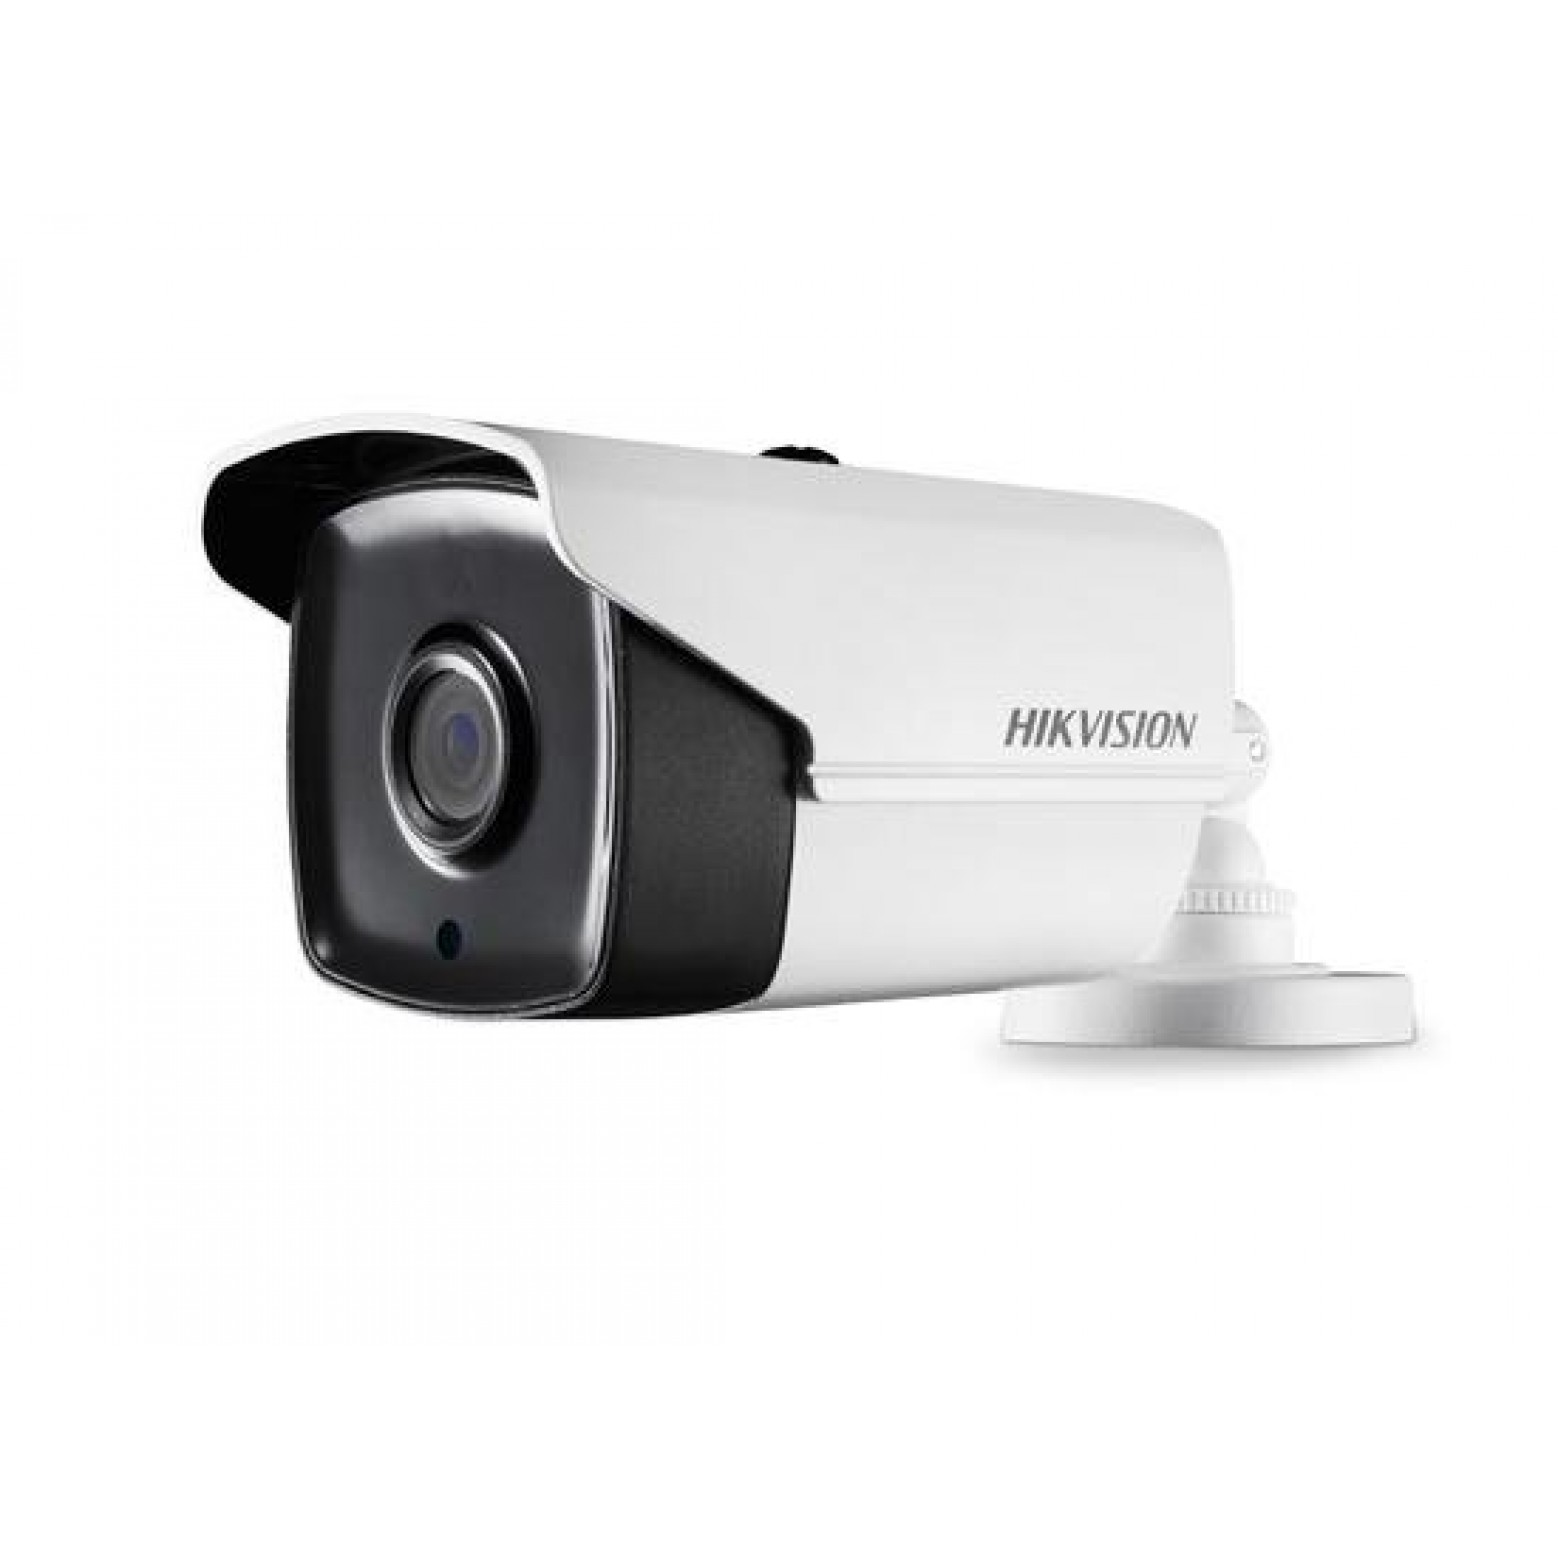 Hikvision DS-2CE16F1T-IT1 3MP Turbo camera 3.6mm, 20M Exir